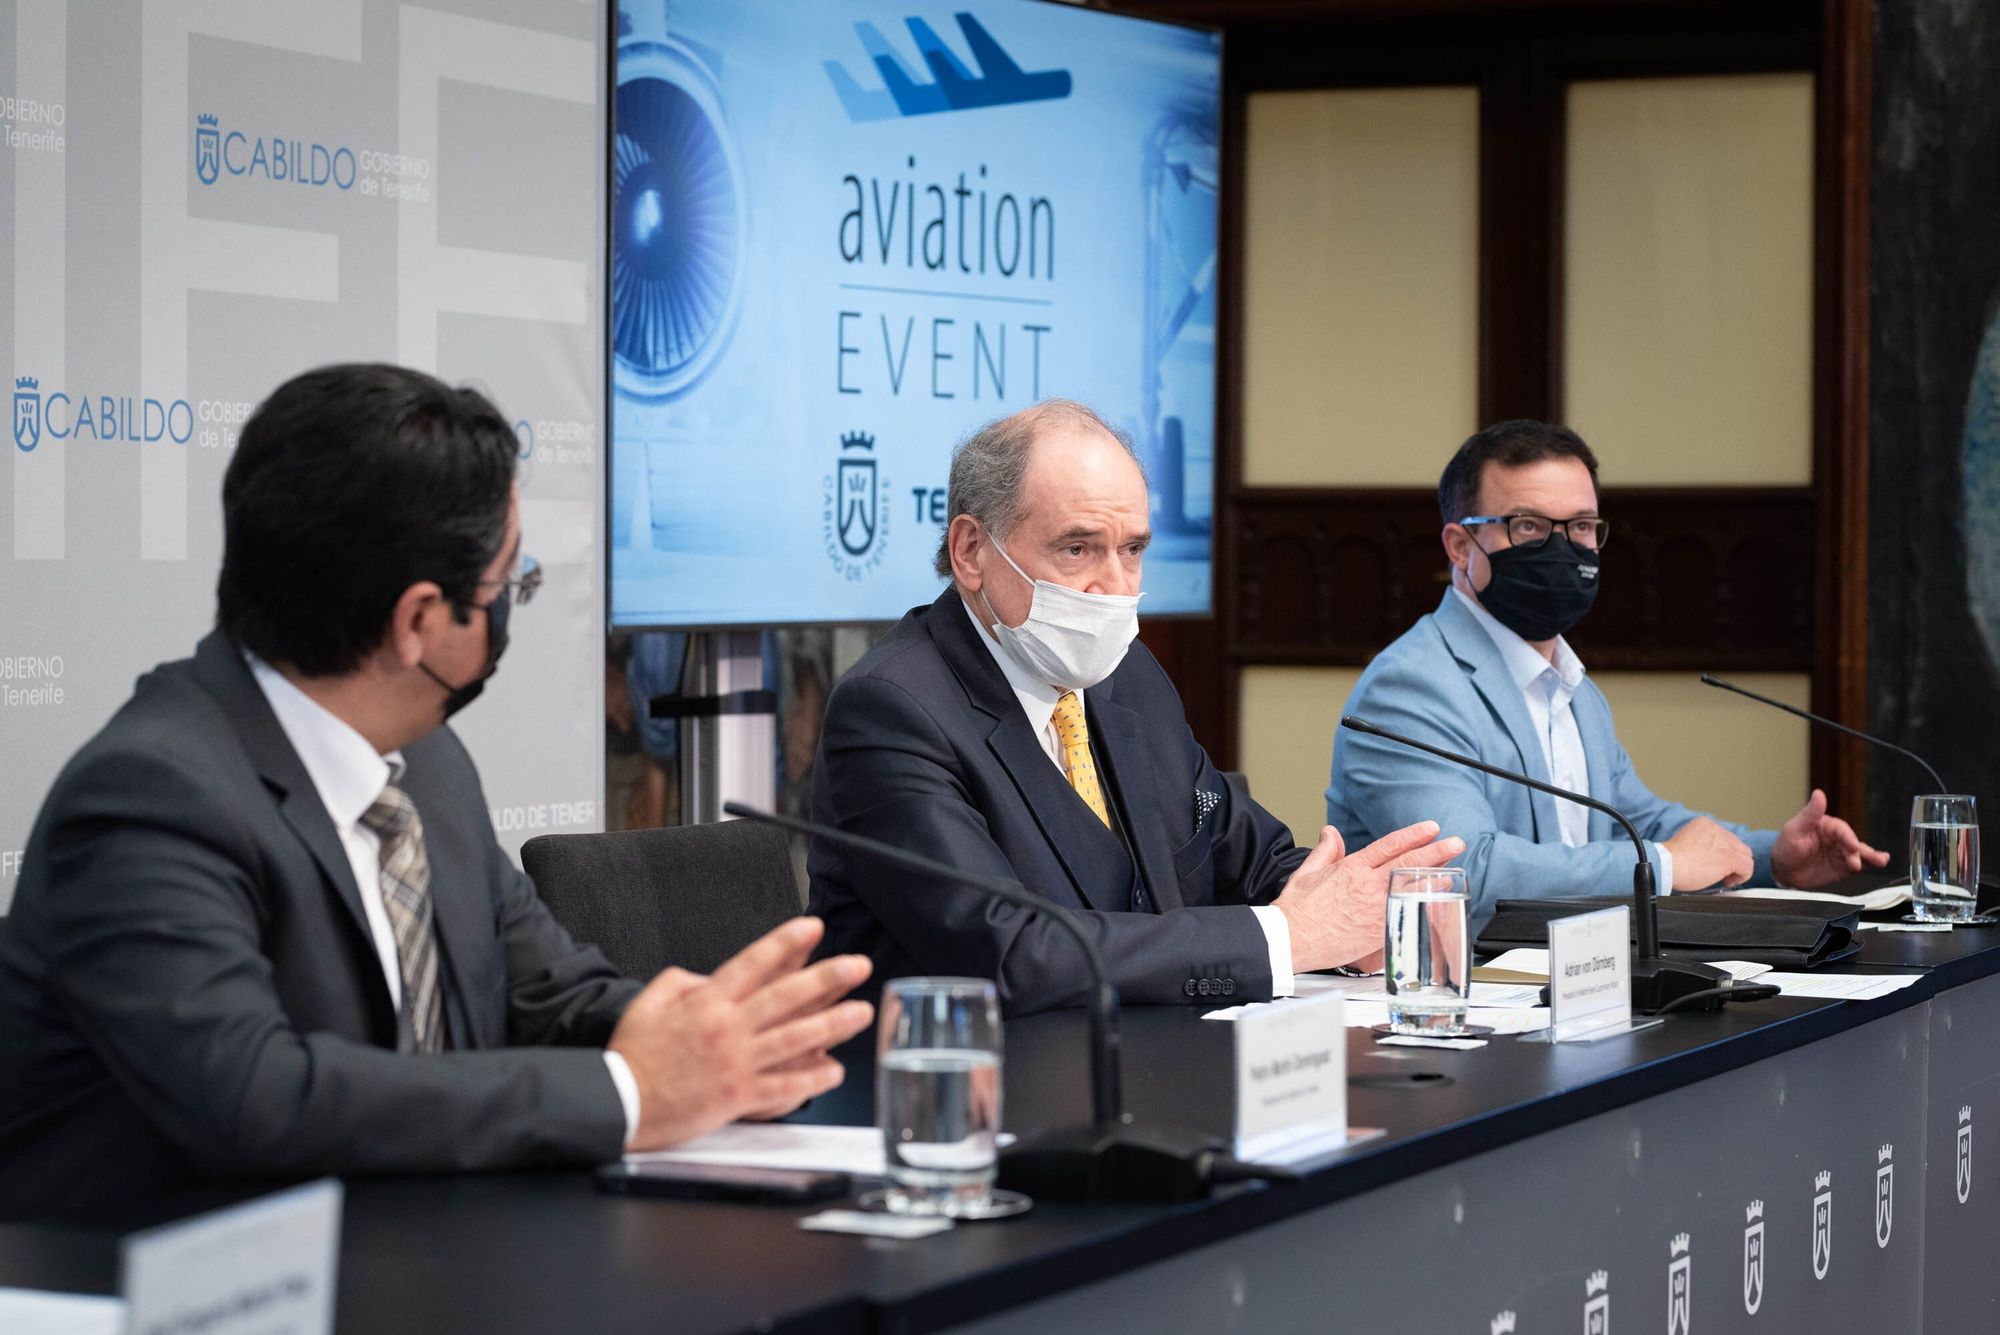 Tenerife Aviation Event 2021